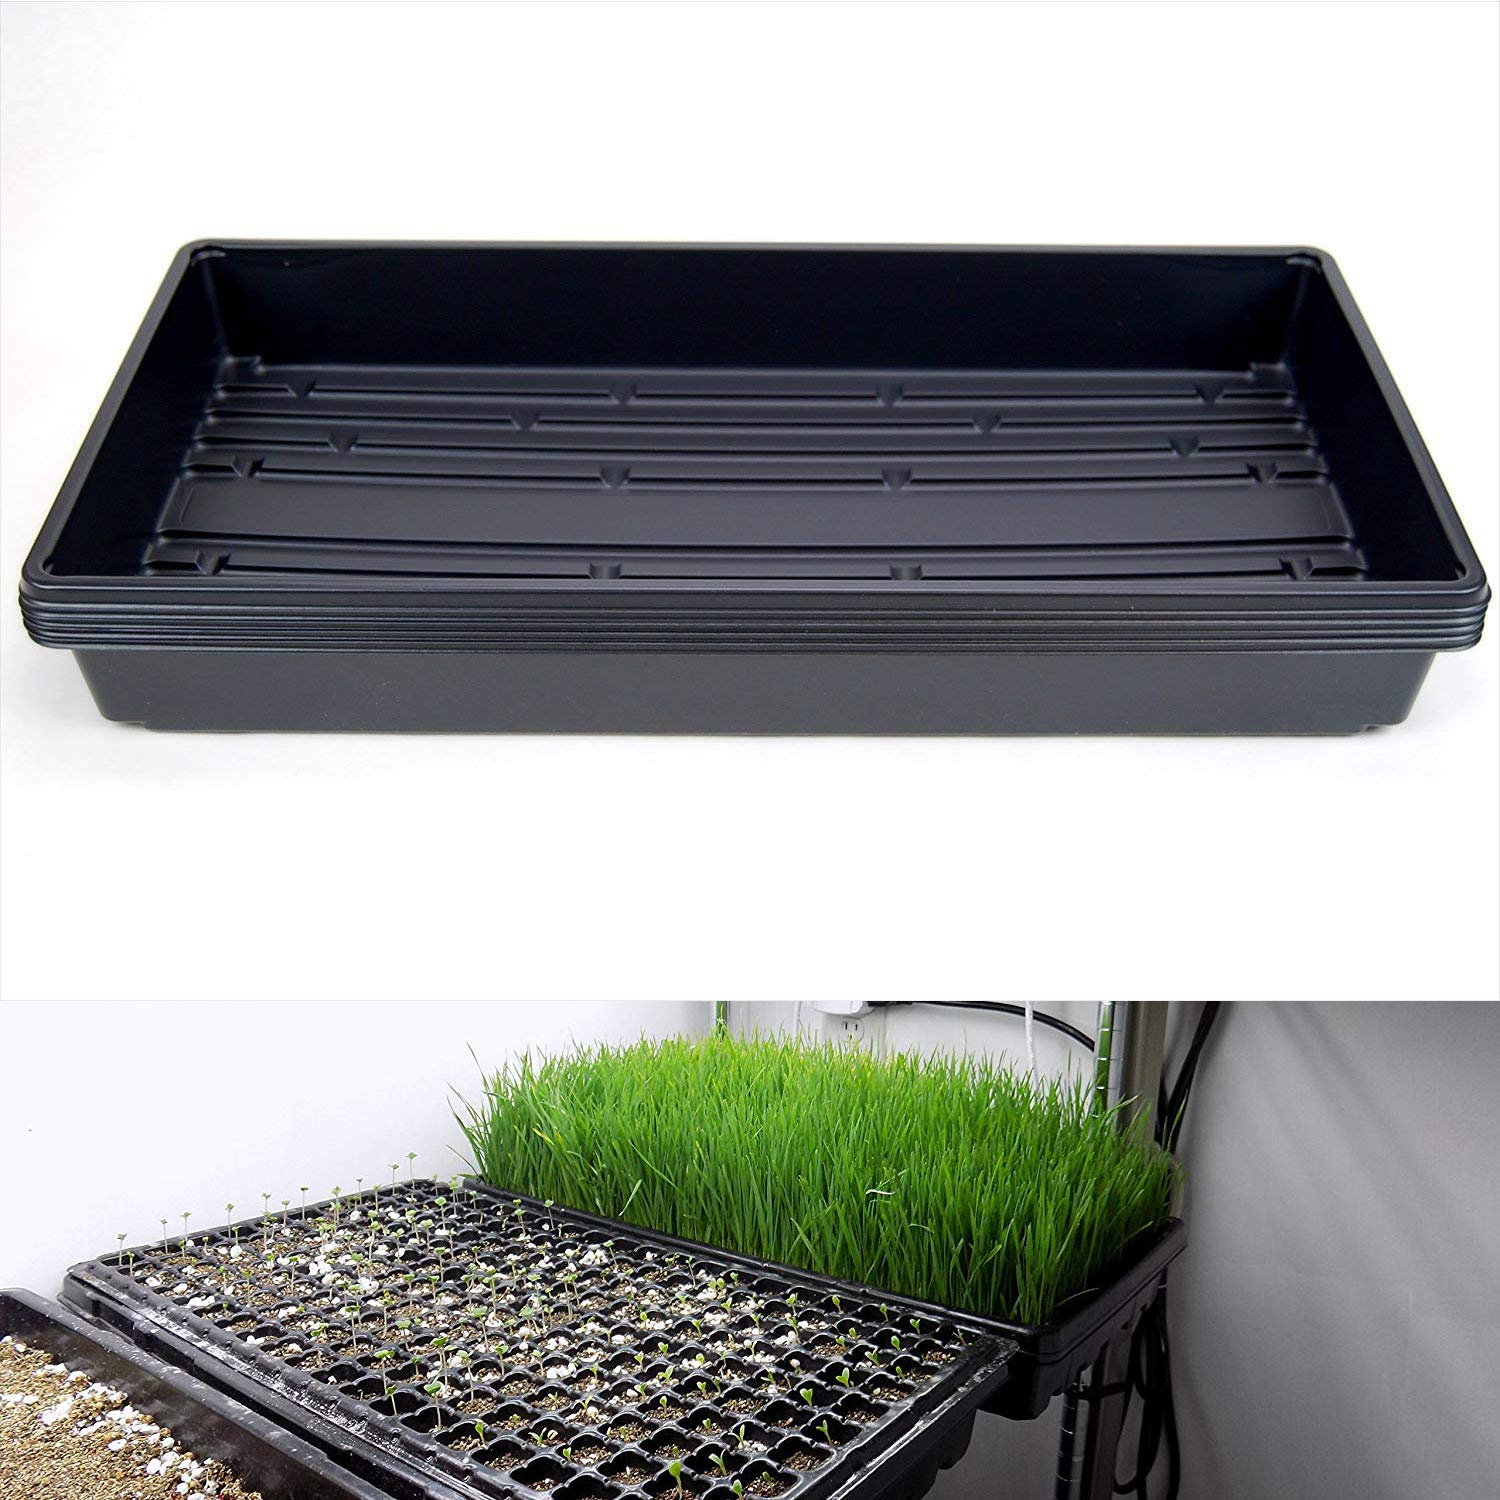 YIDIE 1020 Plant Germination Tray (No Drain Holes) -21' X 11' X 2'- 5 Pack Garden Seed Starter Grow Trays for Propagation Seed Starter, Microgreens Wheatgrass and More - Soil or Hydroponic